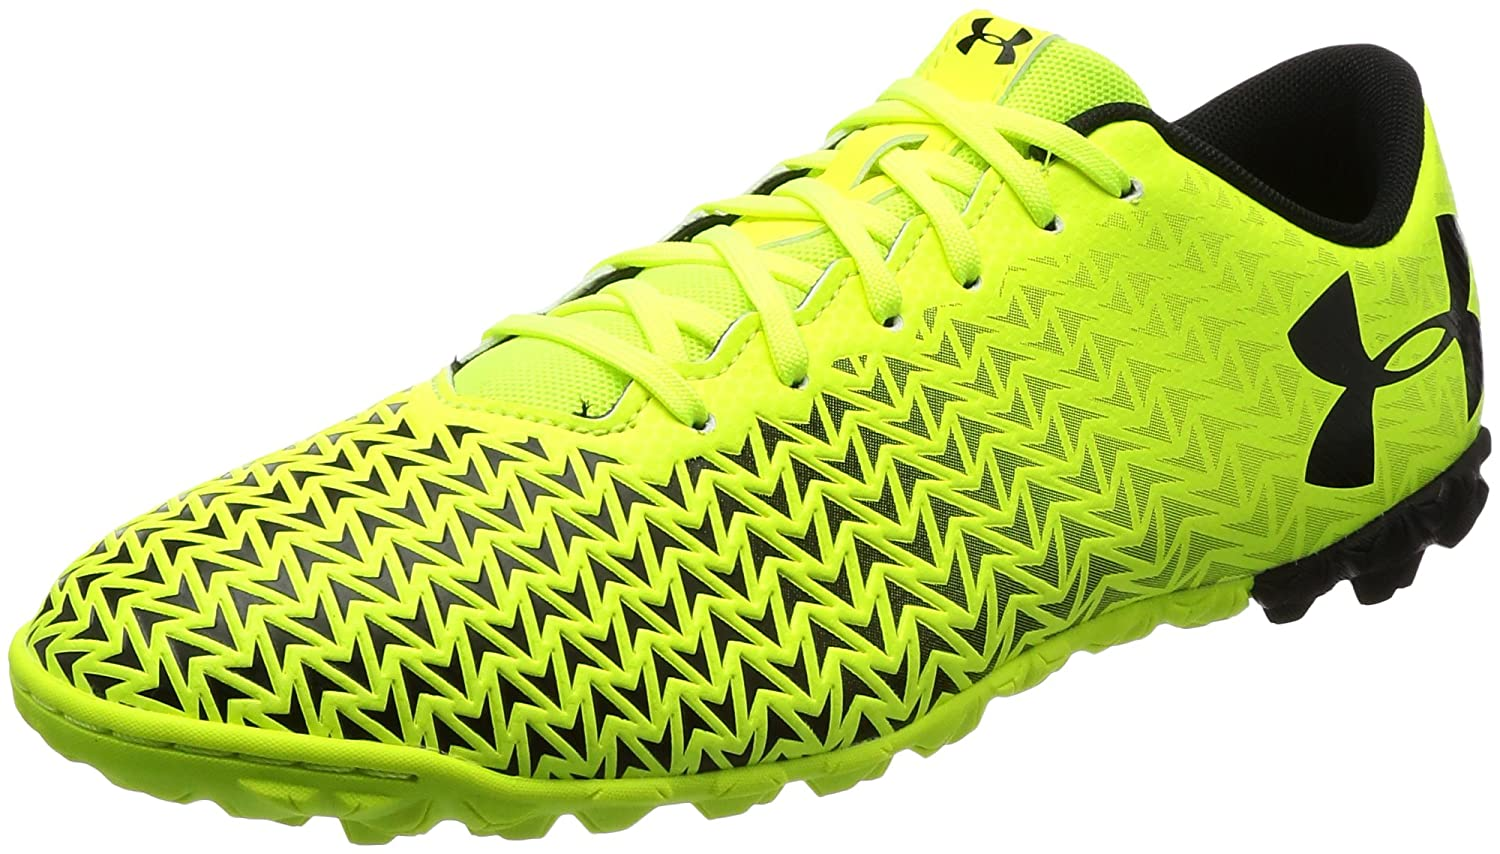 2c413e9be2d90 Under Armour UA CF Force 3.0 TF